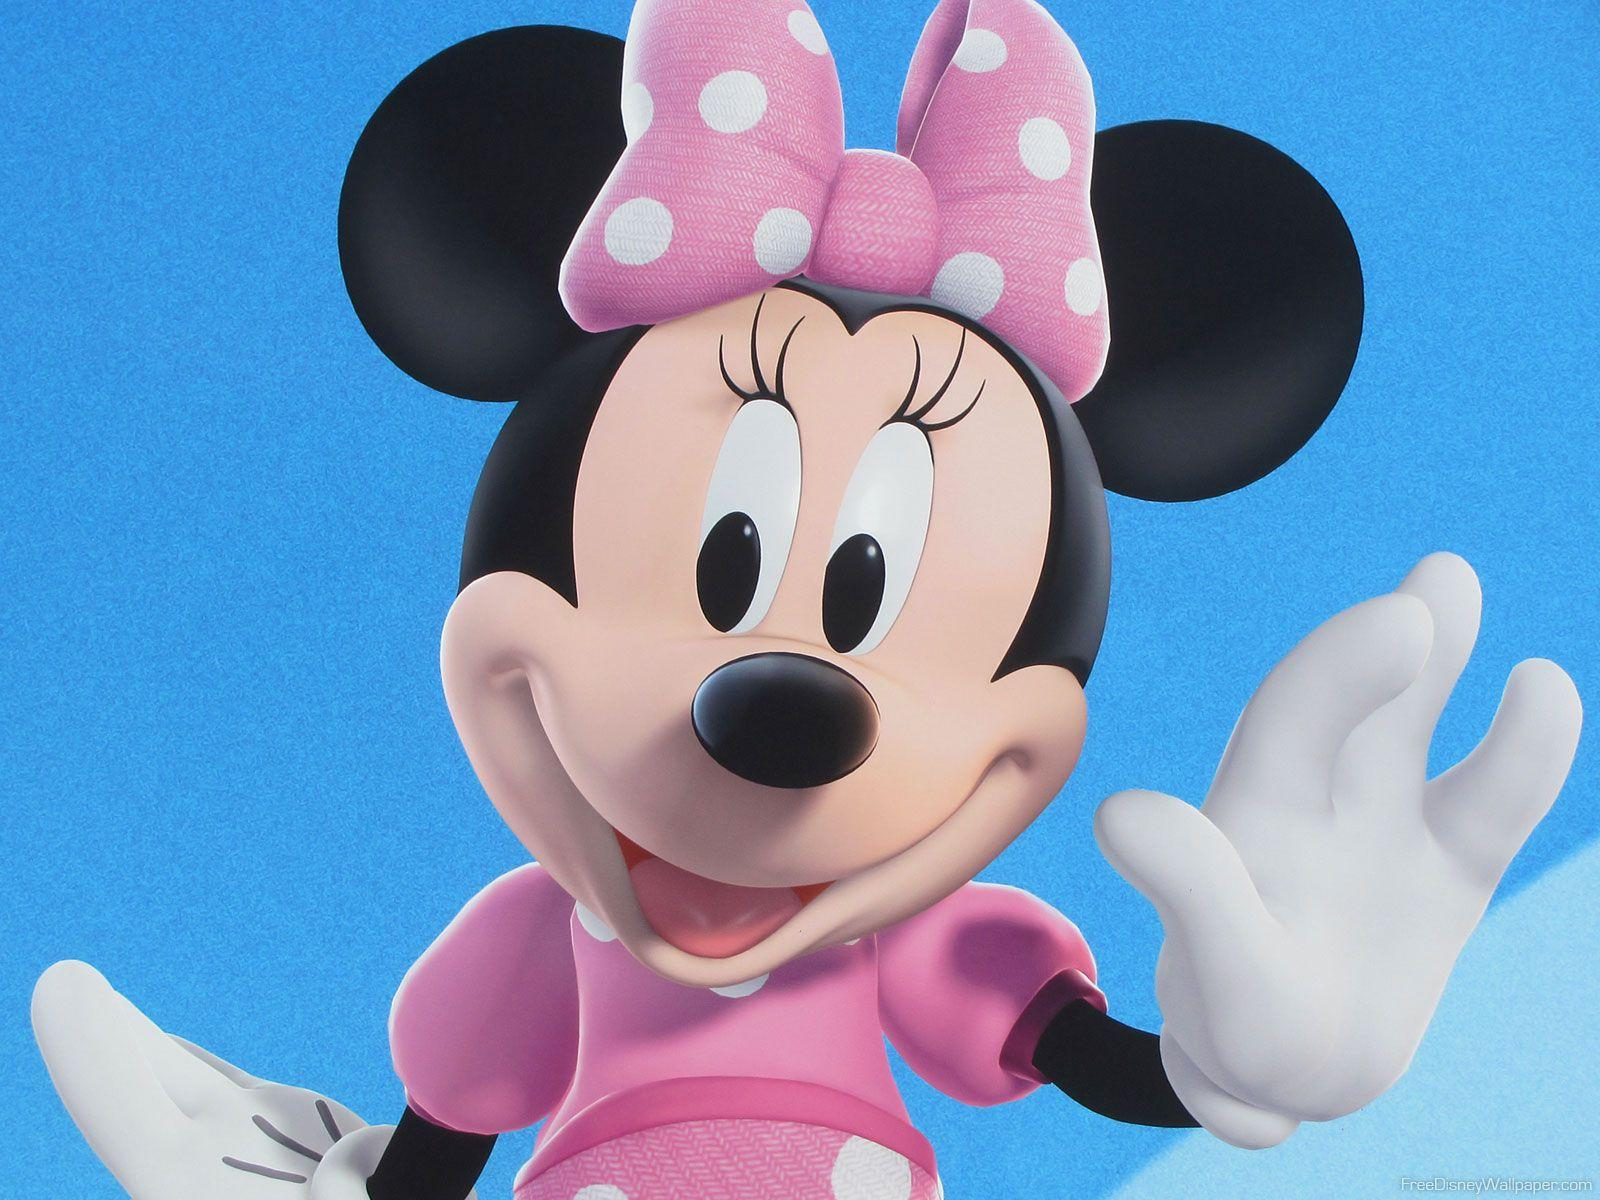 Disney Wallpaper – Free Disney Wallpapers » Minnie Mouse